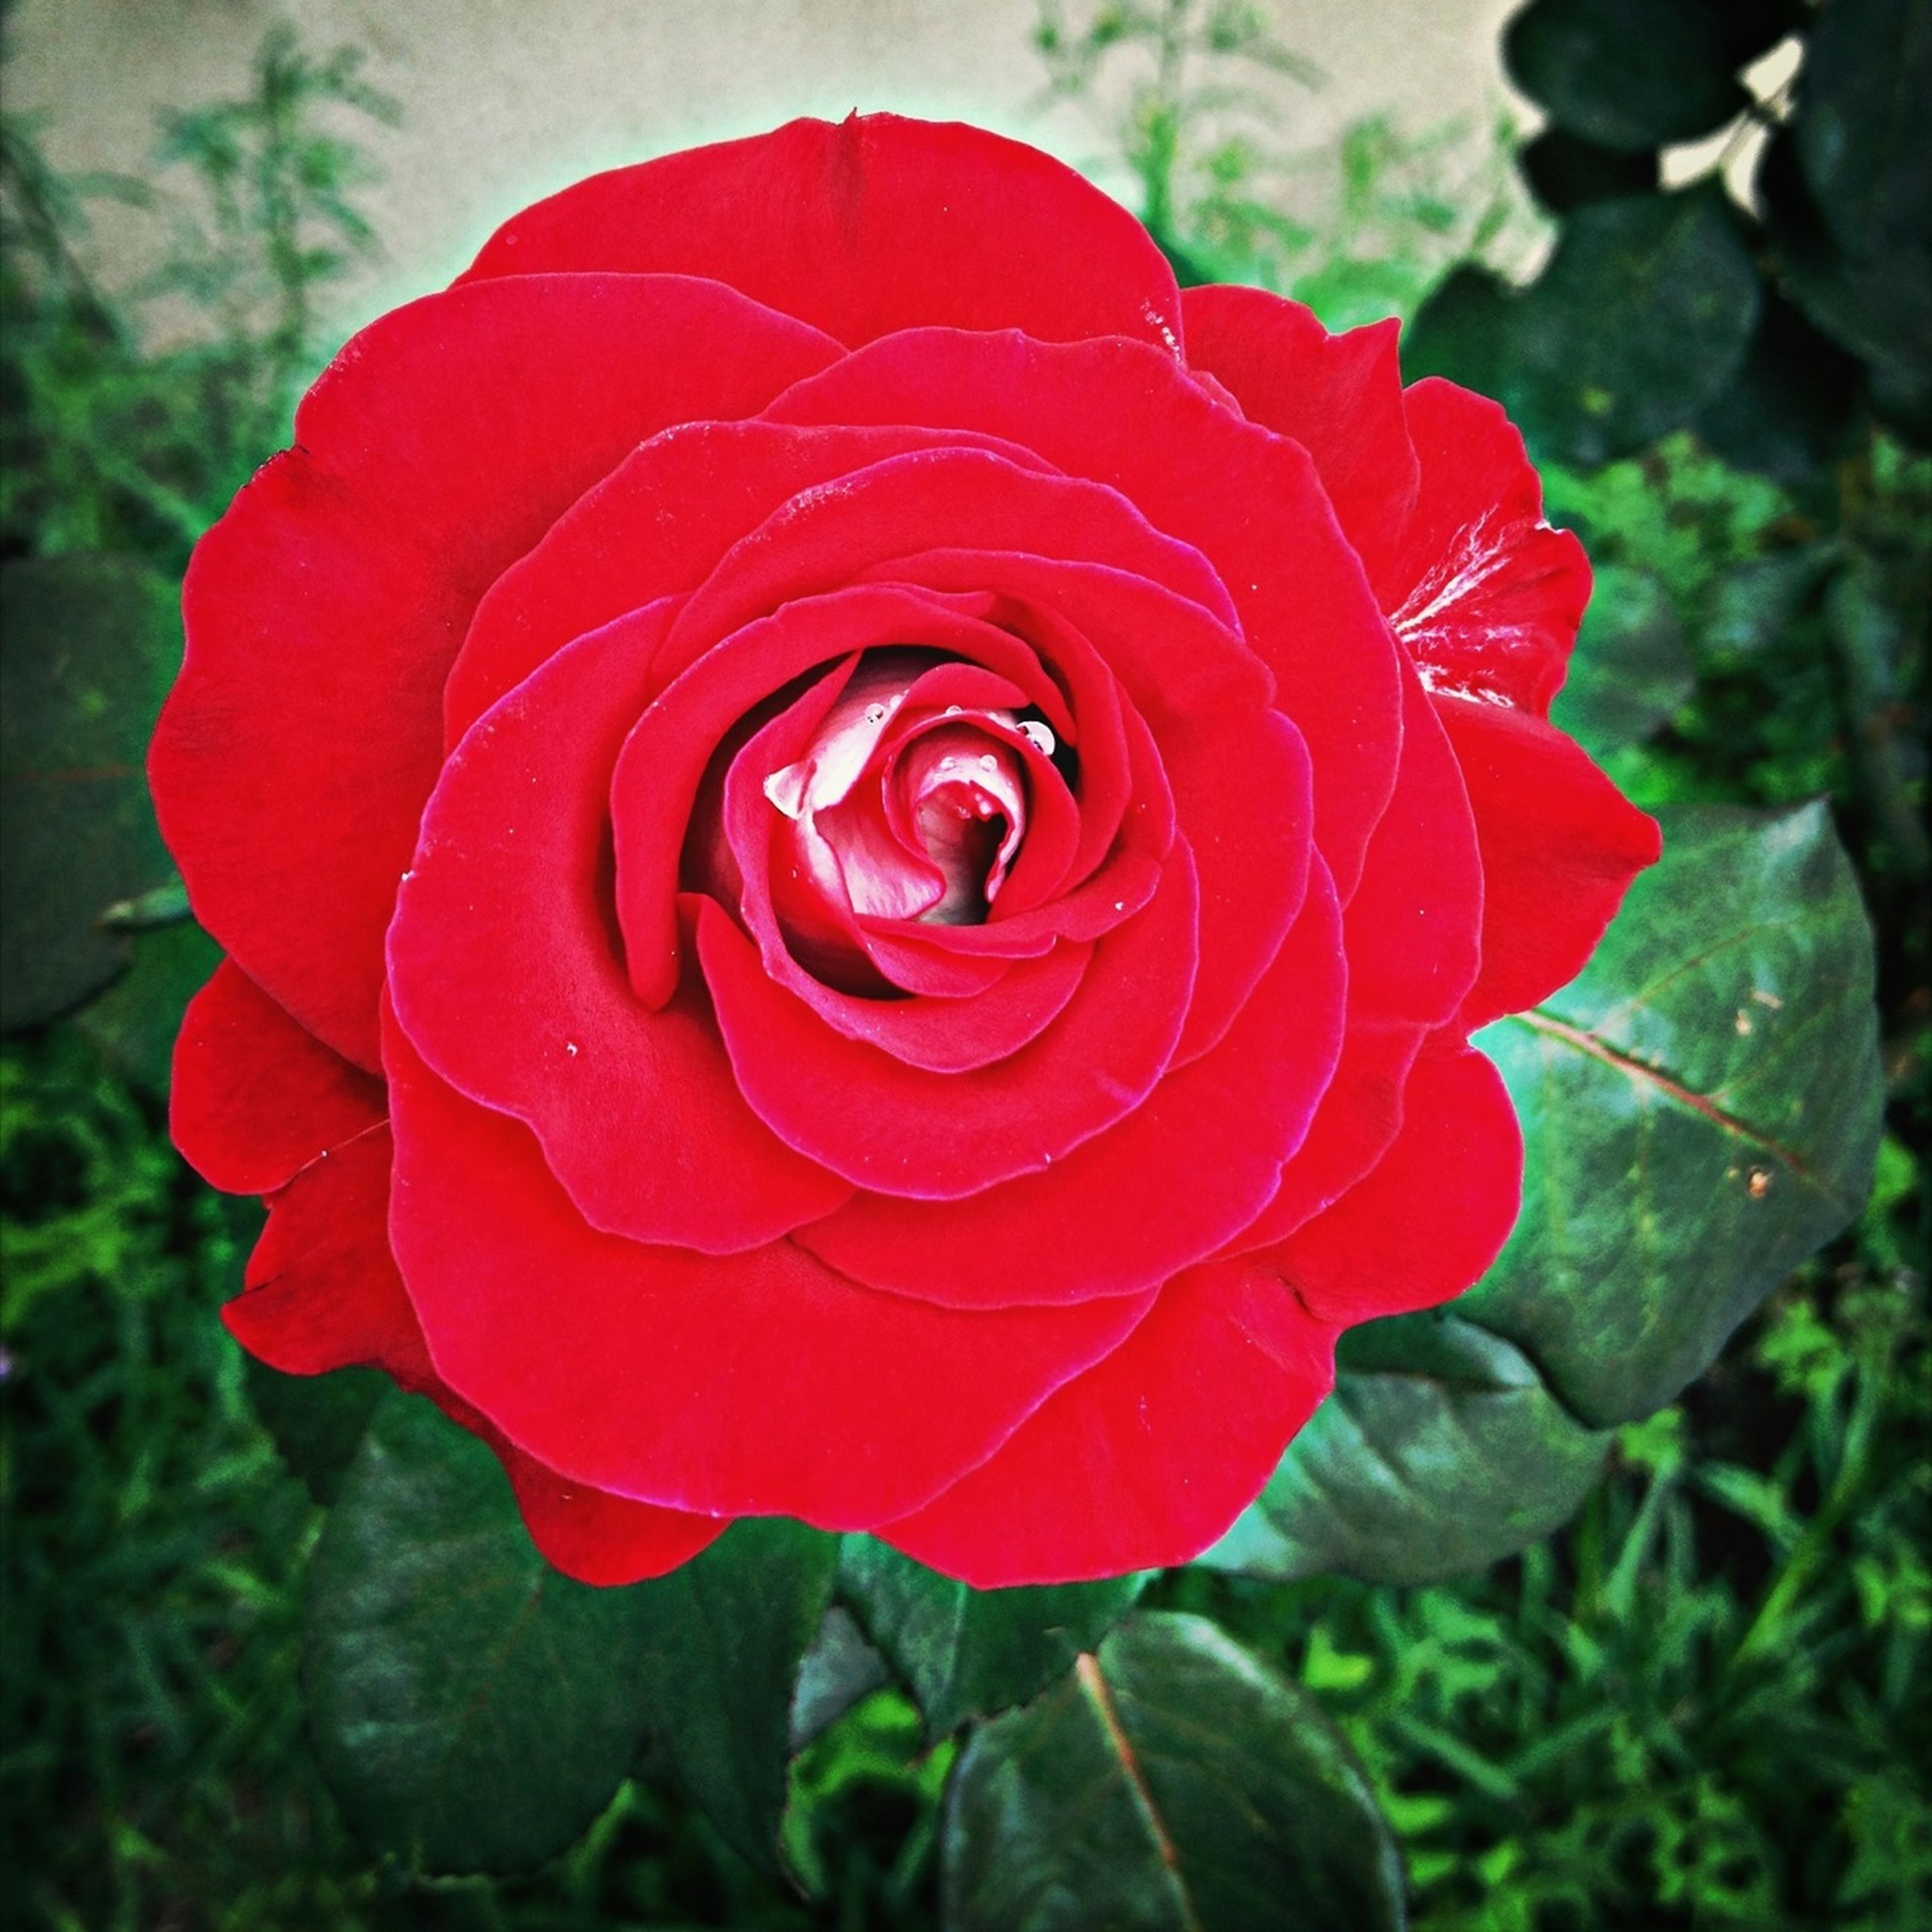 flower, petal, flower head, freshness, fragility, rose - flower, single flower, beauty in nature, growth, close-up, red, blooming, rose, focus on foreground, nature, plant, single rose, in bloom, day, leaf